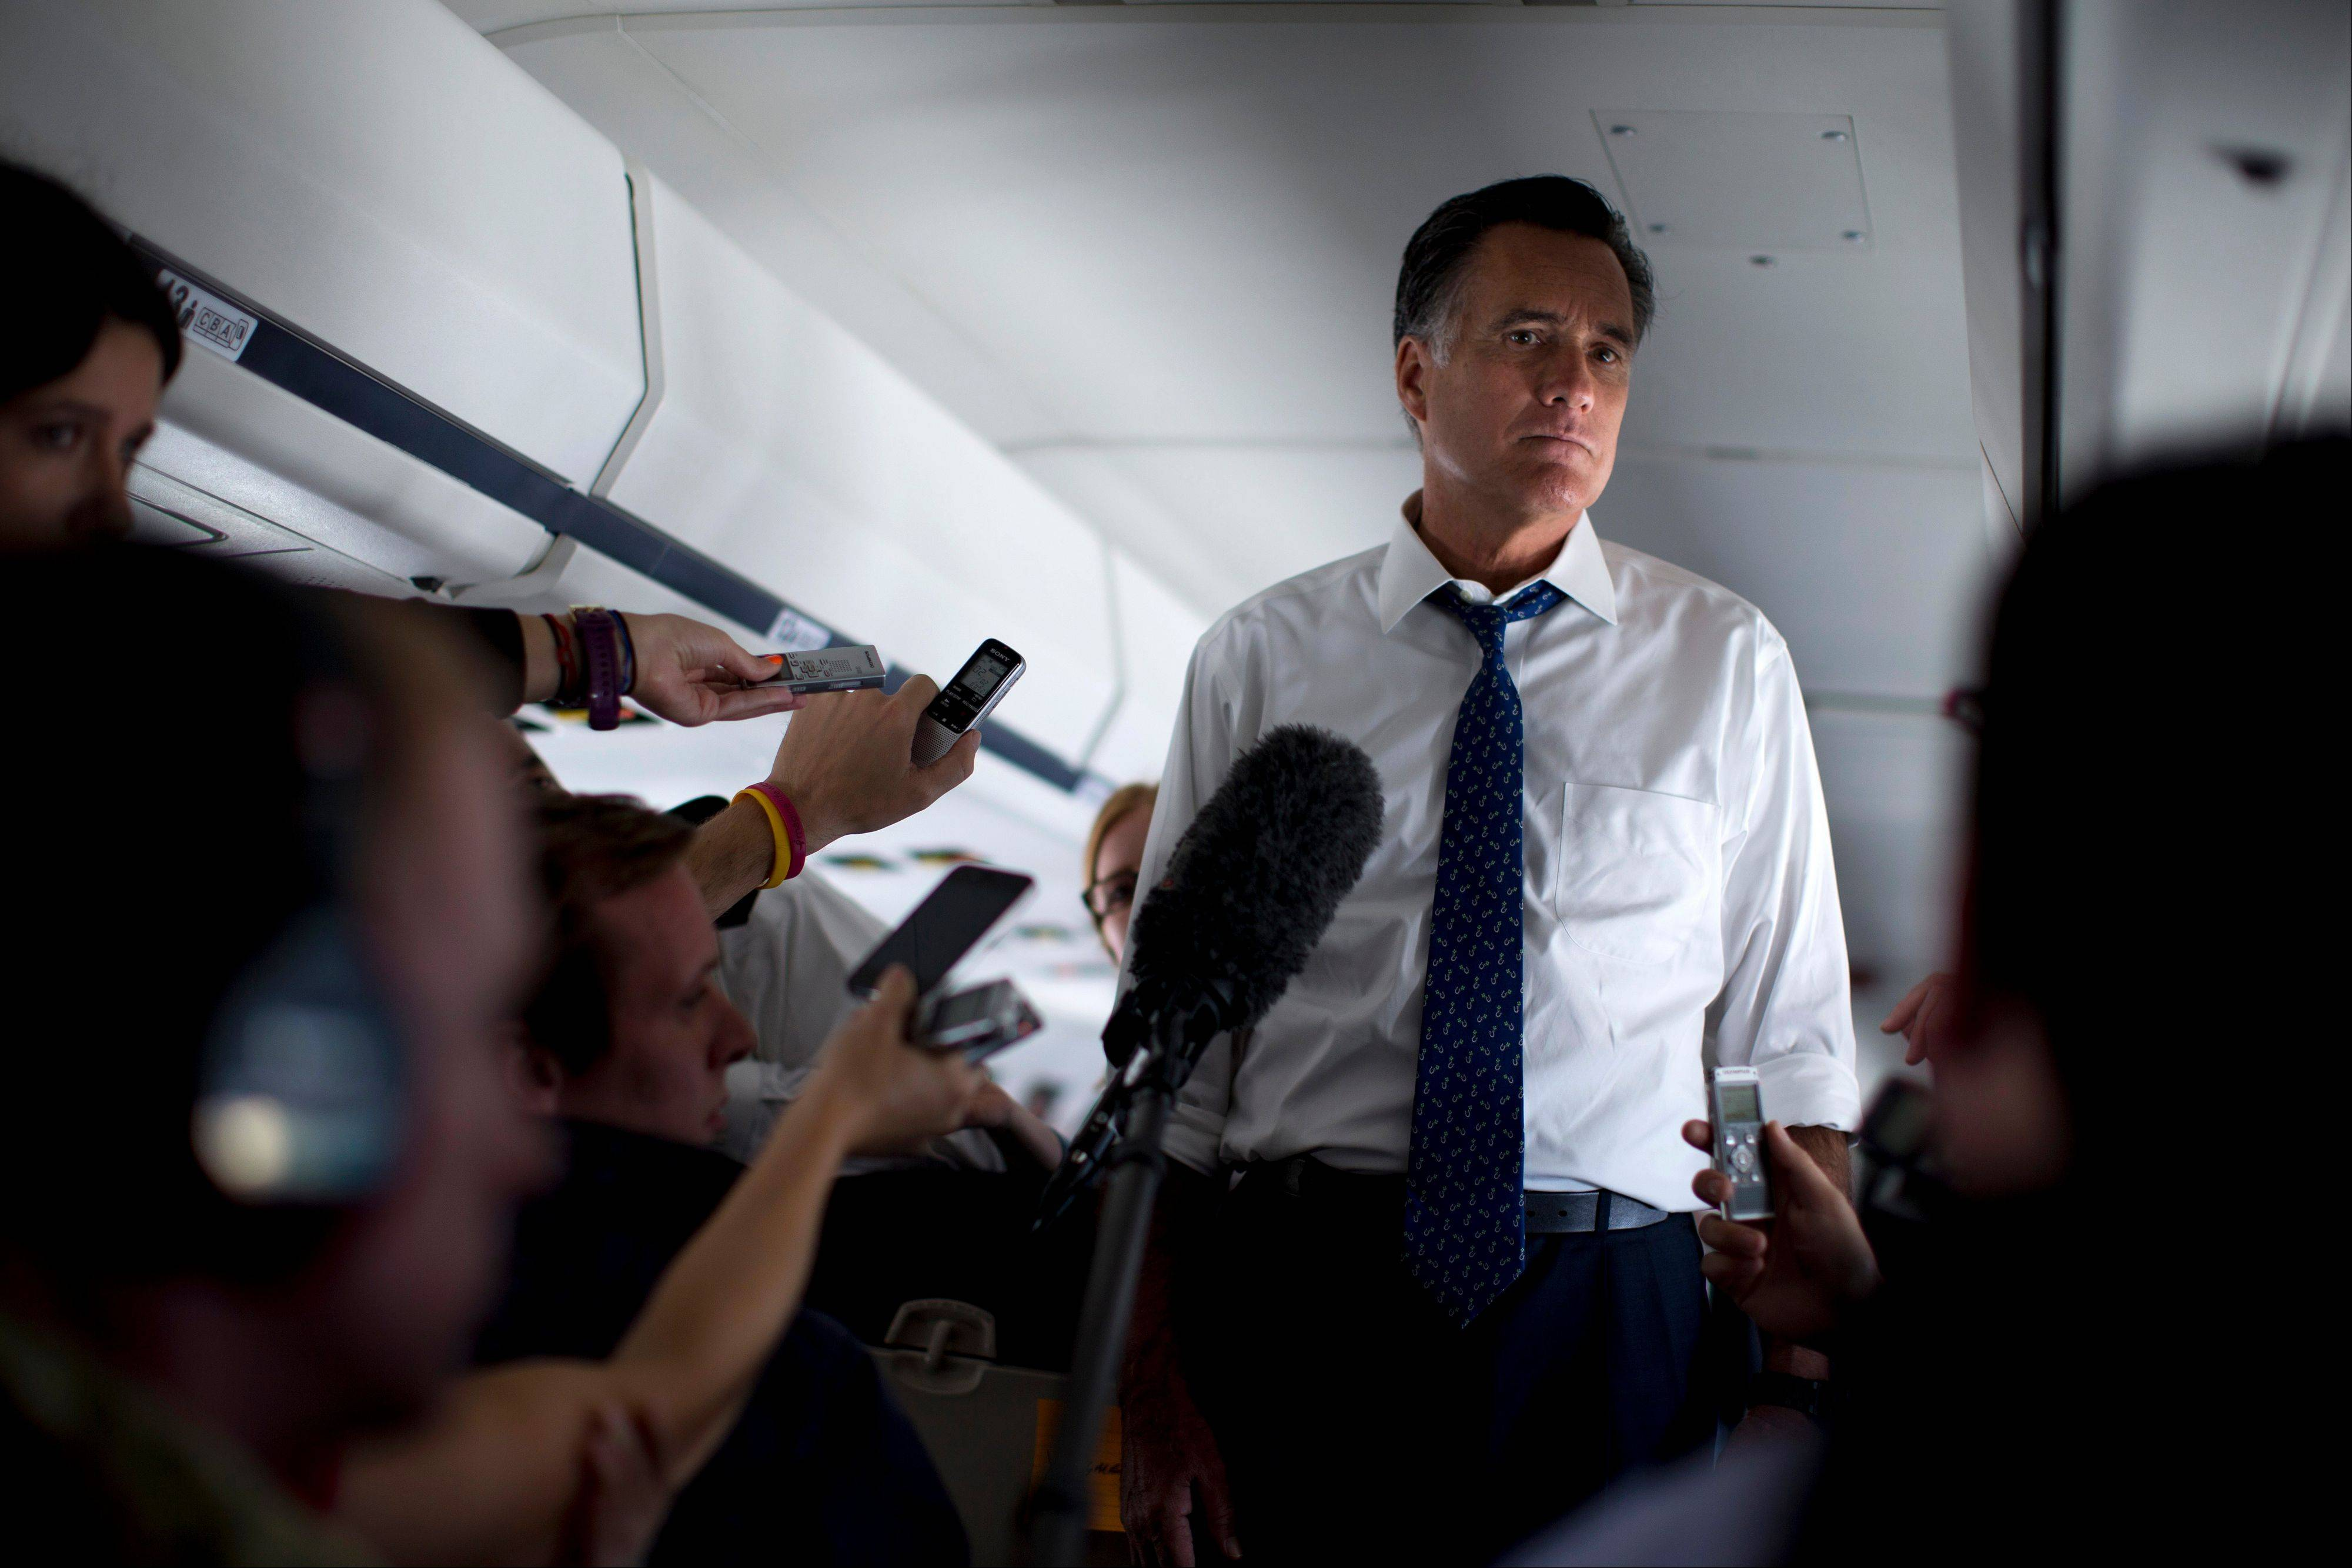 Republican presidential candidate, former Massachusetts Gov. Mitt Romney, listens to a question as he speaks with the media Friday aboard his campaign plane during a flight to Boston.